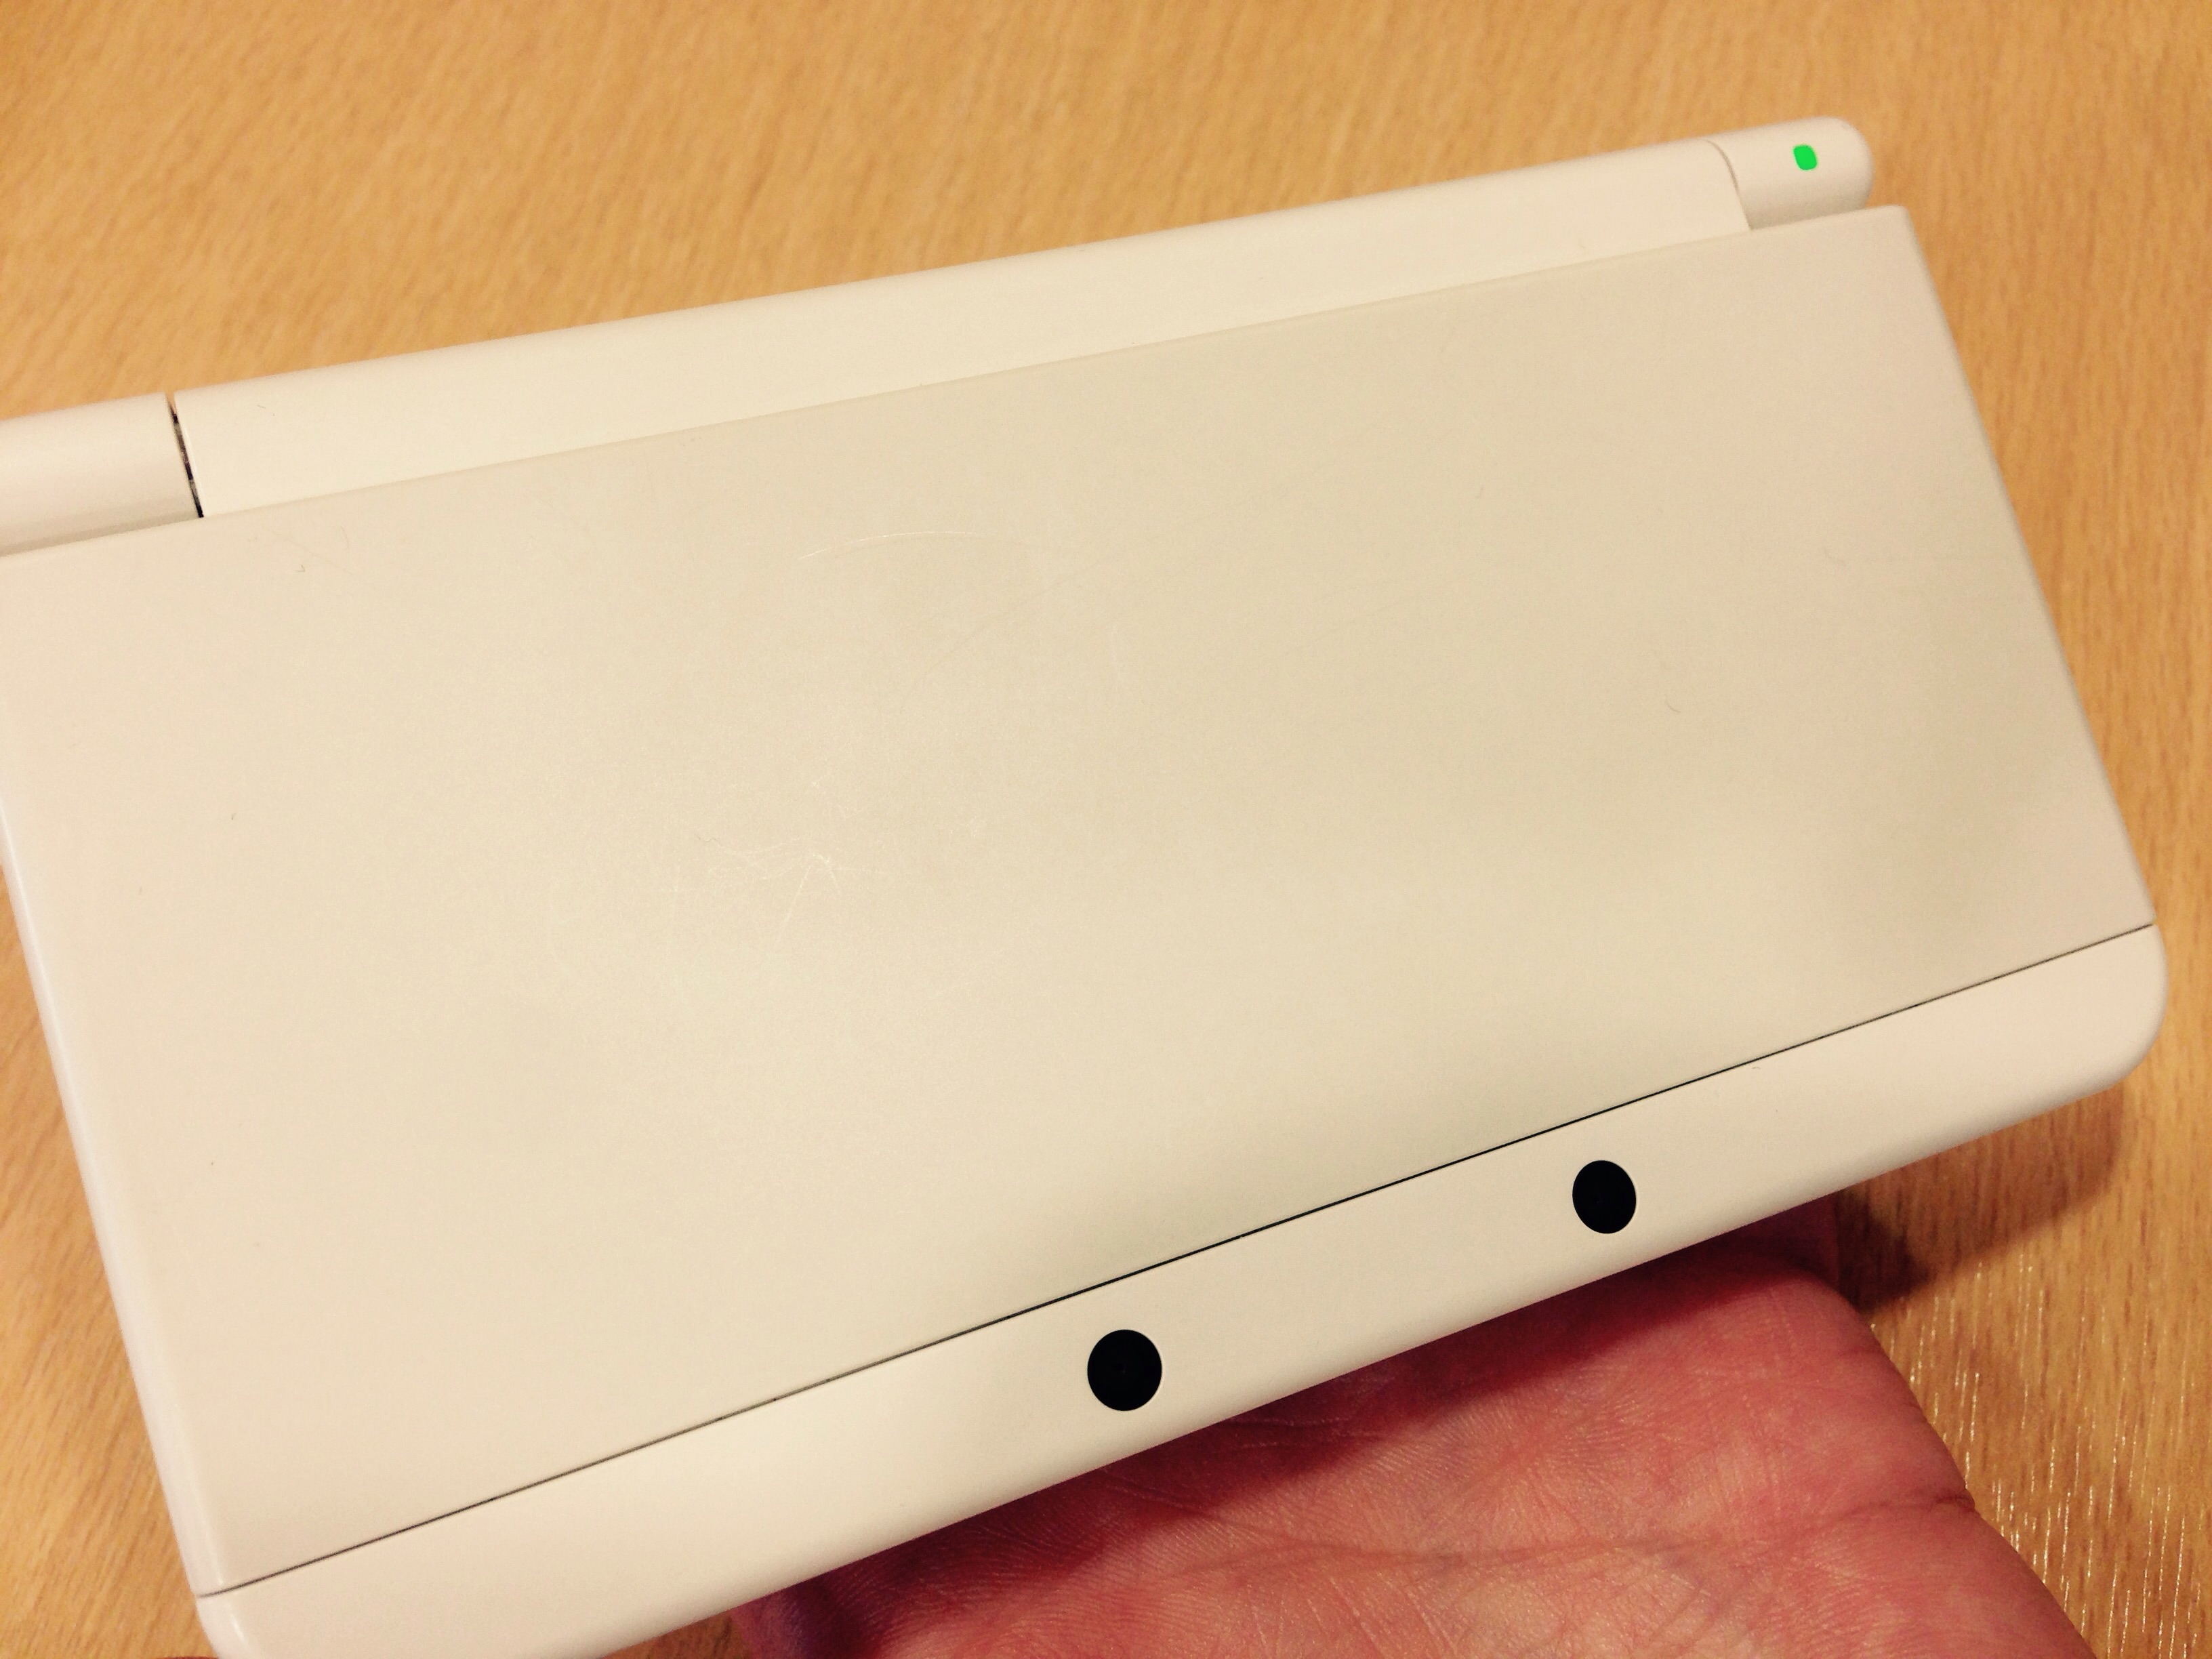 3DSケース